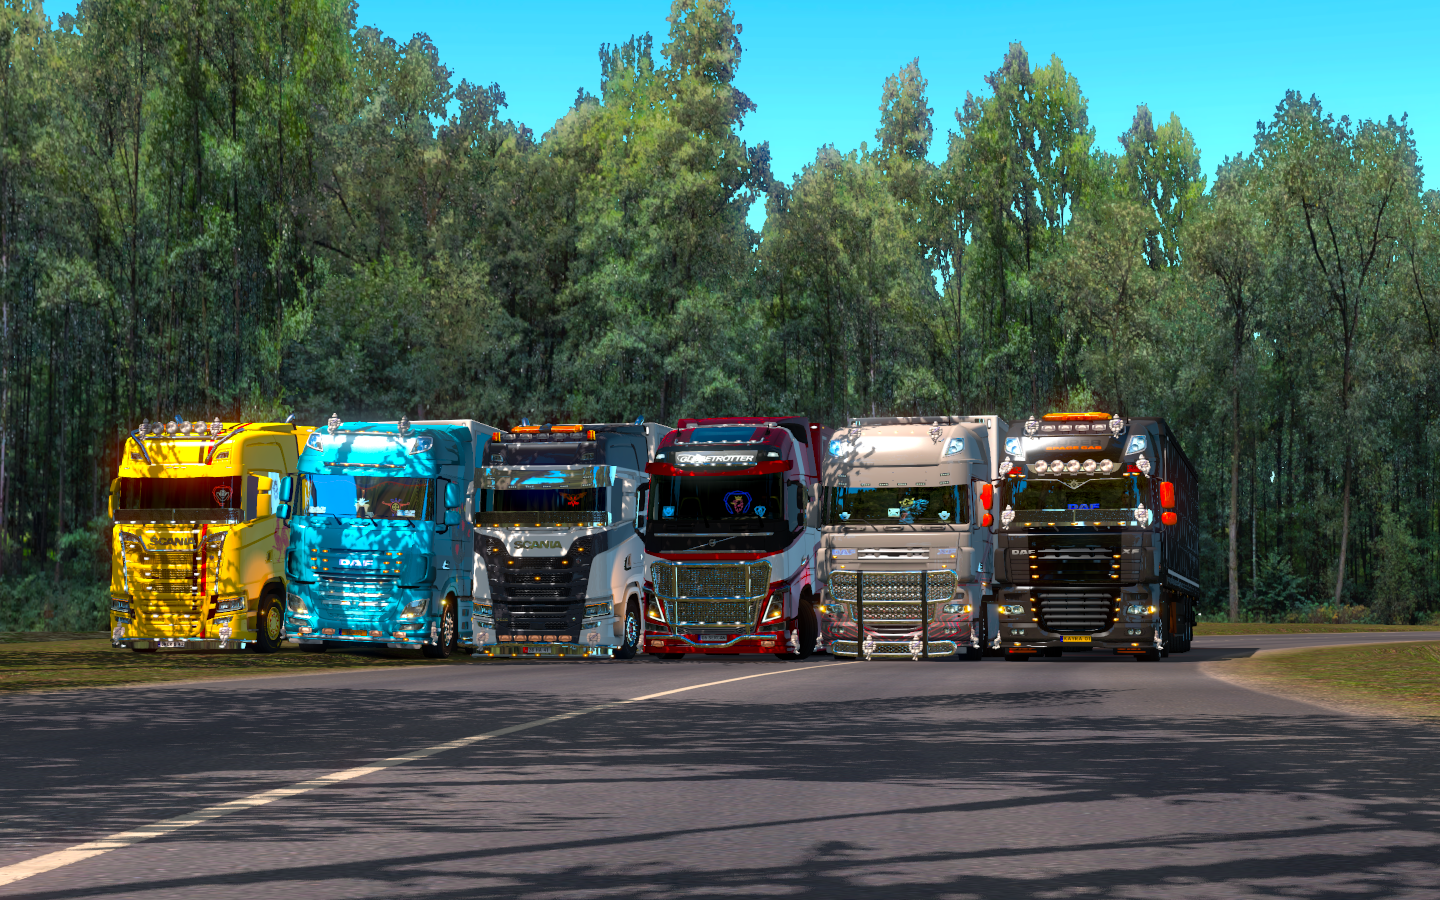 ets2_20190421_163855_00.png